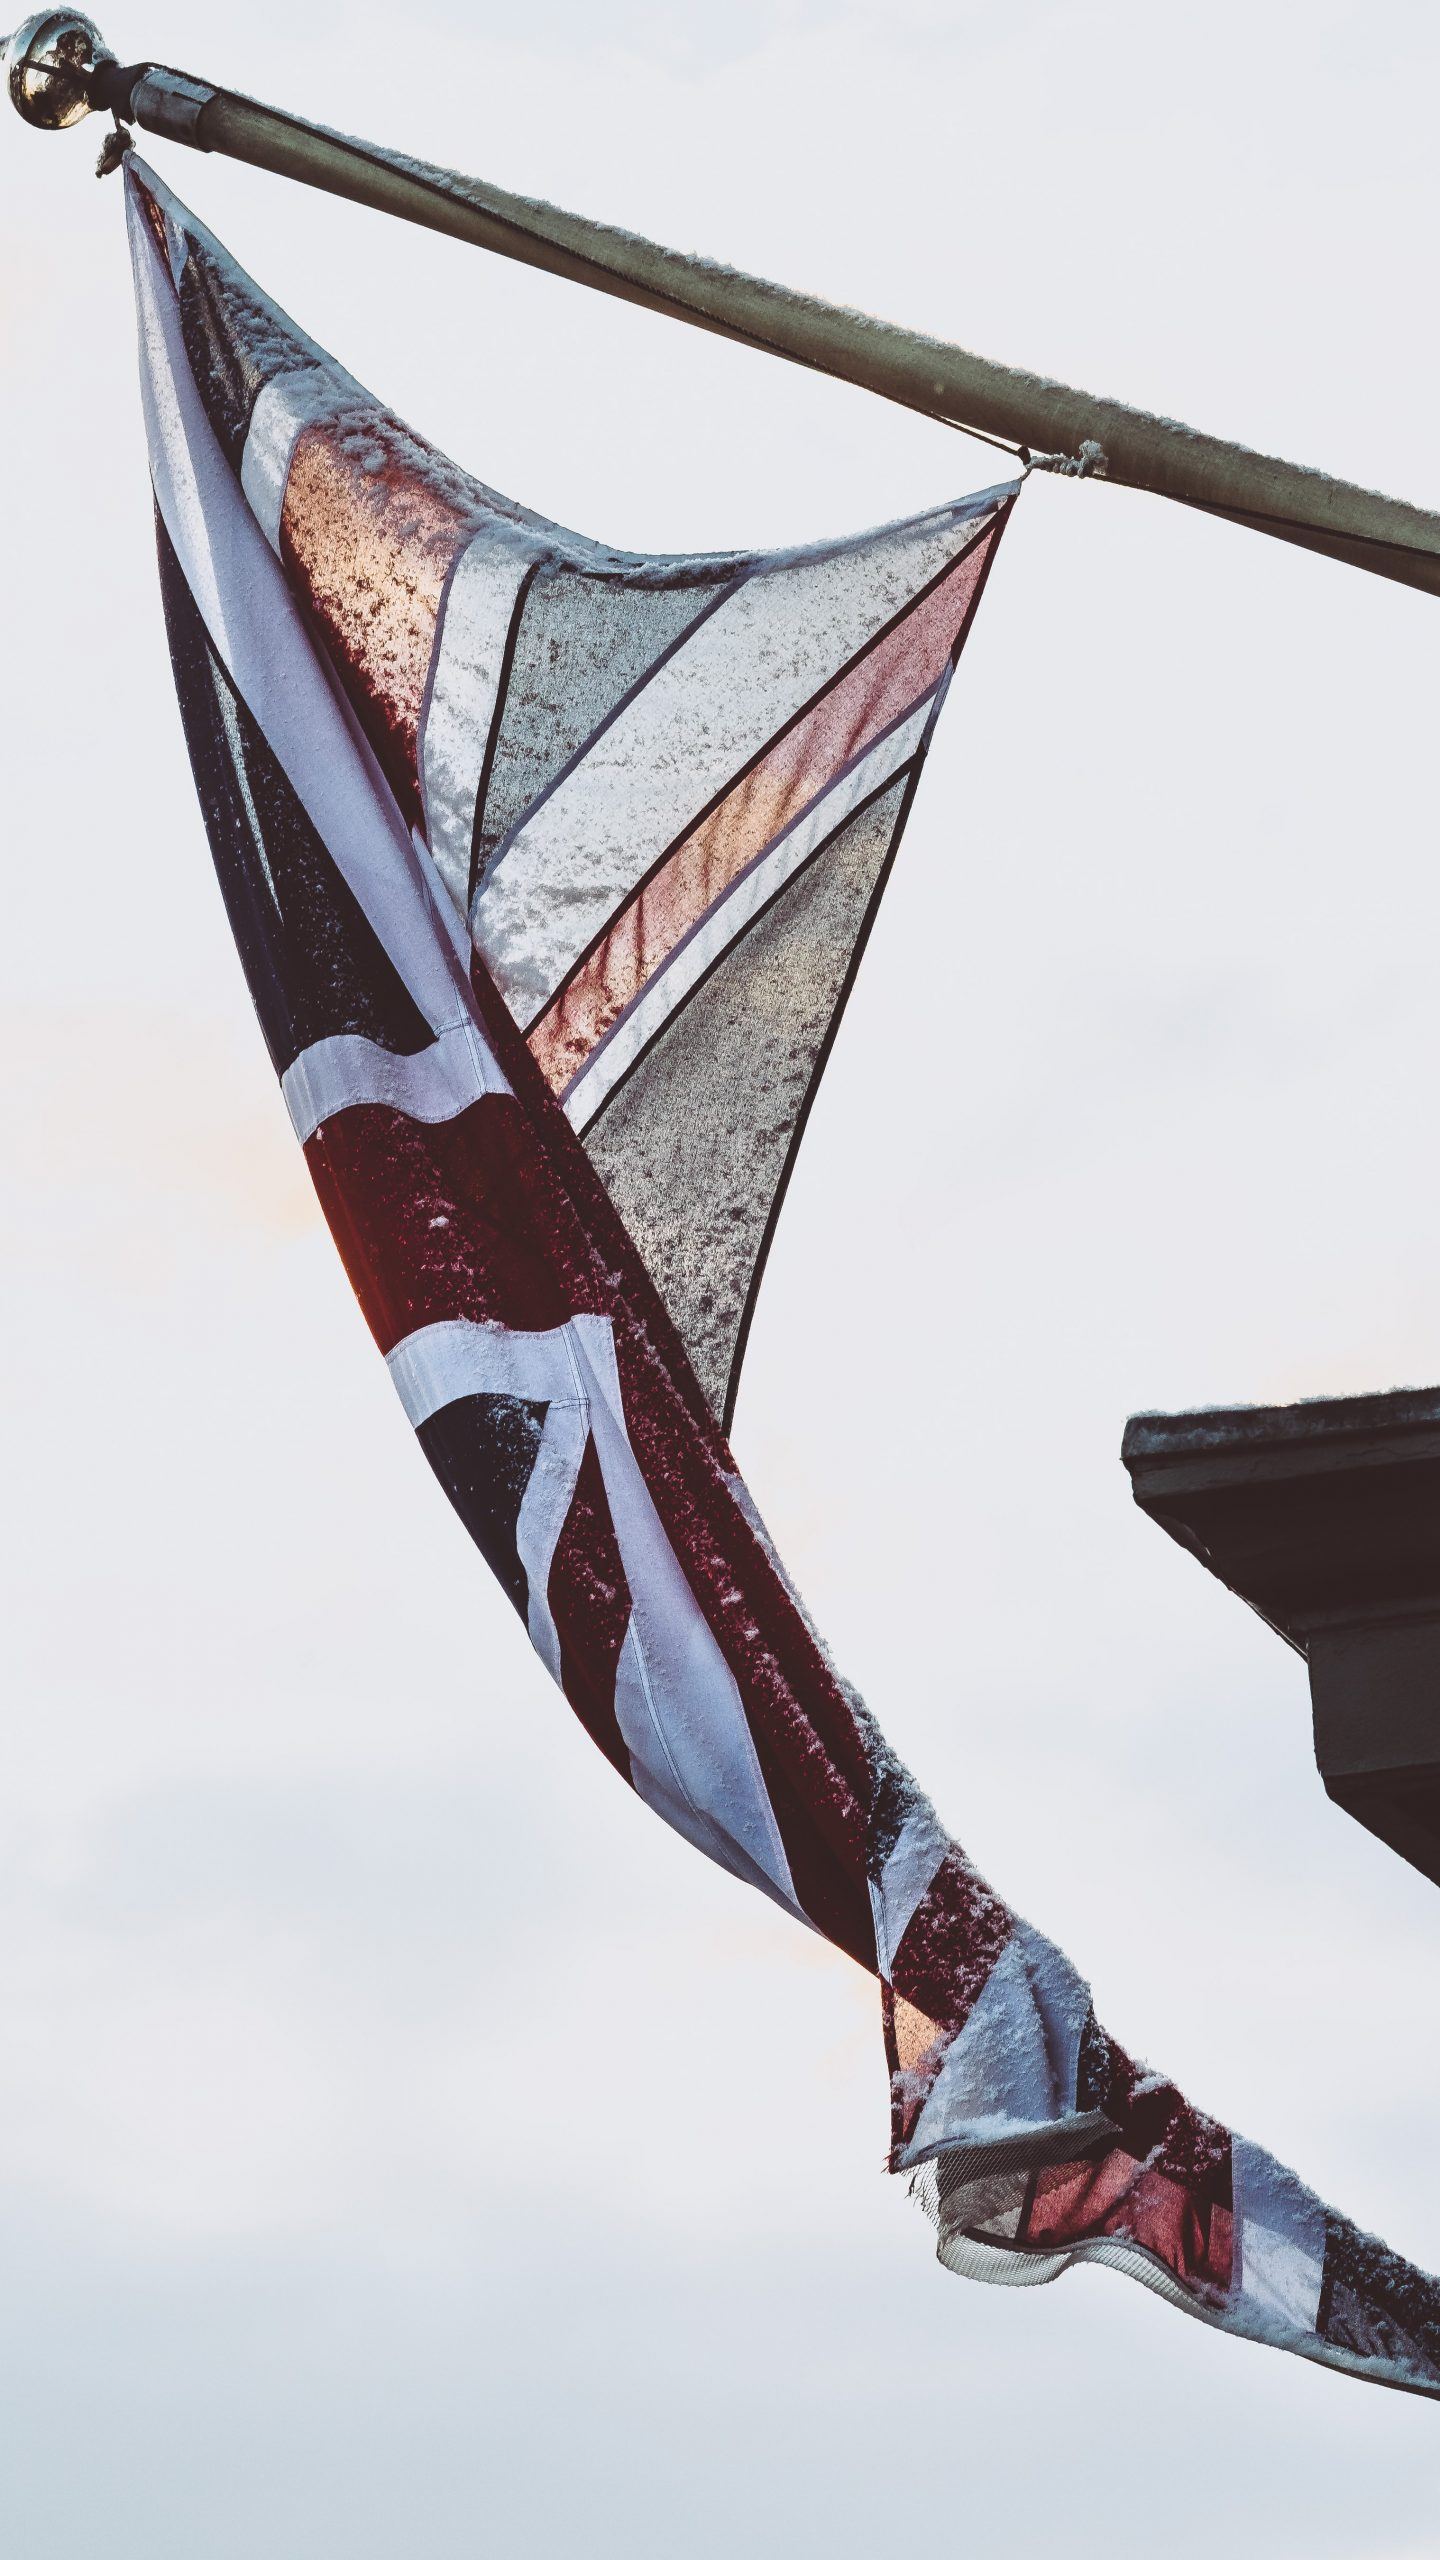 UK flag waiving in the sky